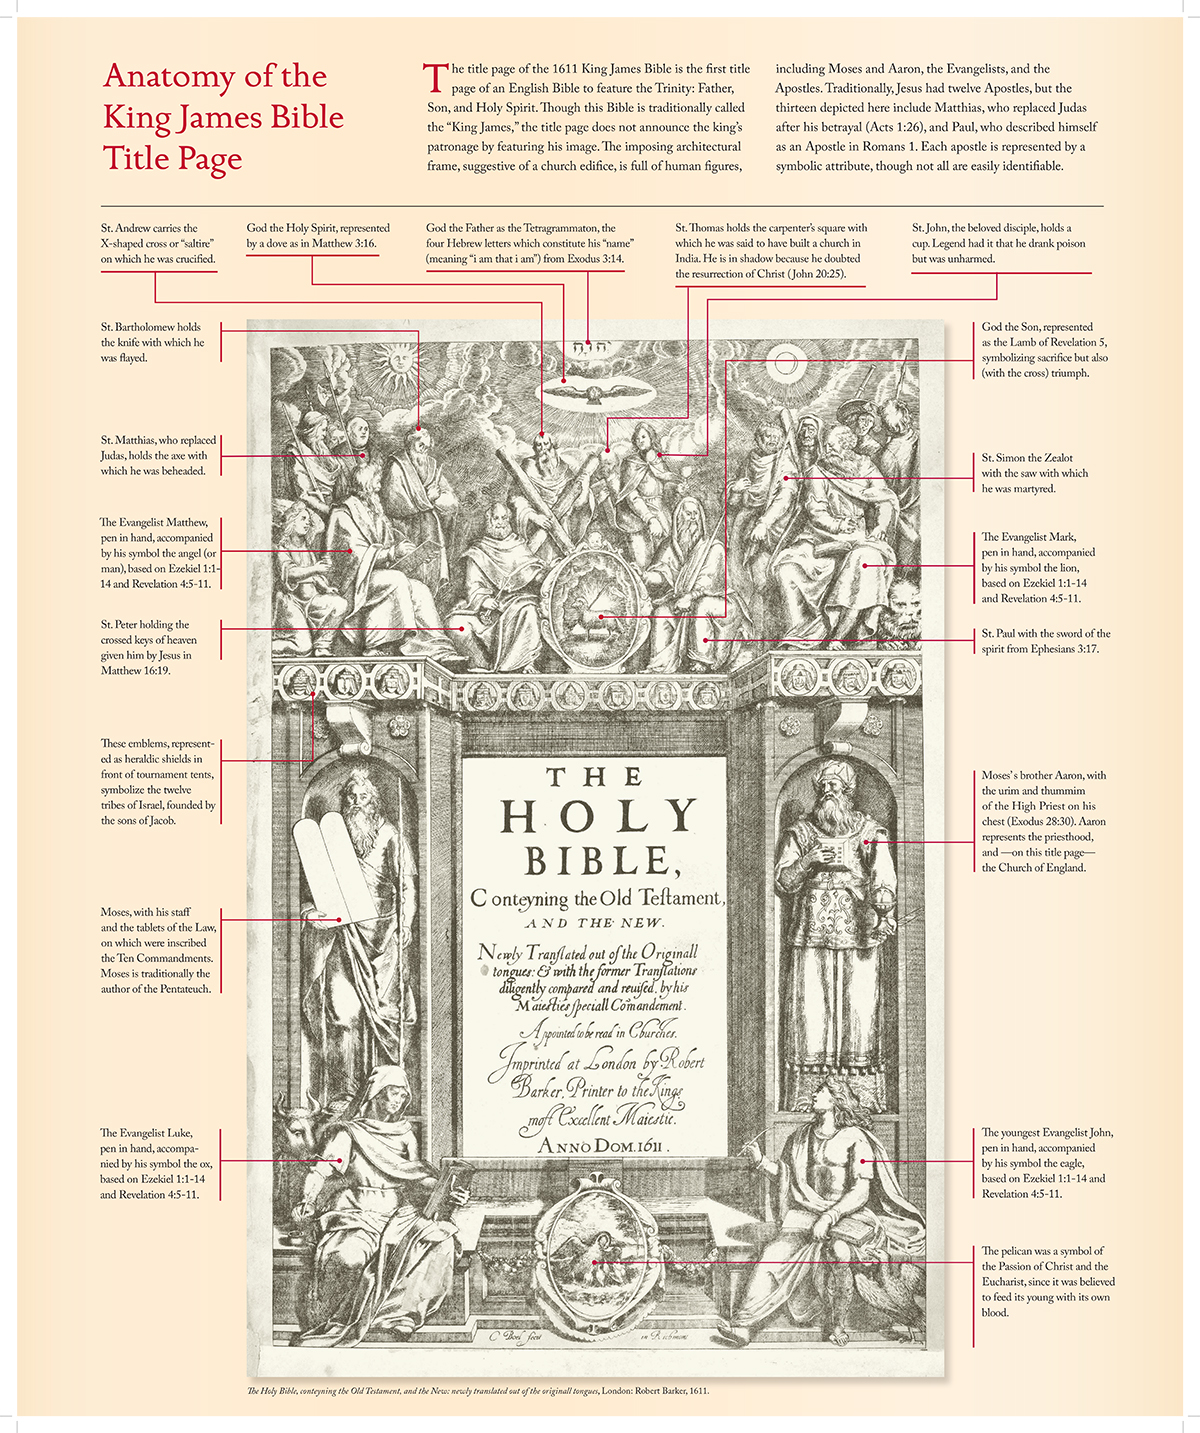 Anatomy of the title page in the King James Version.